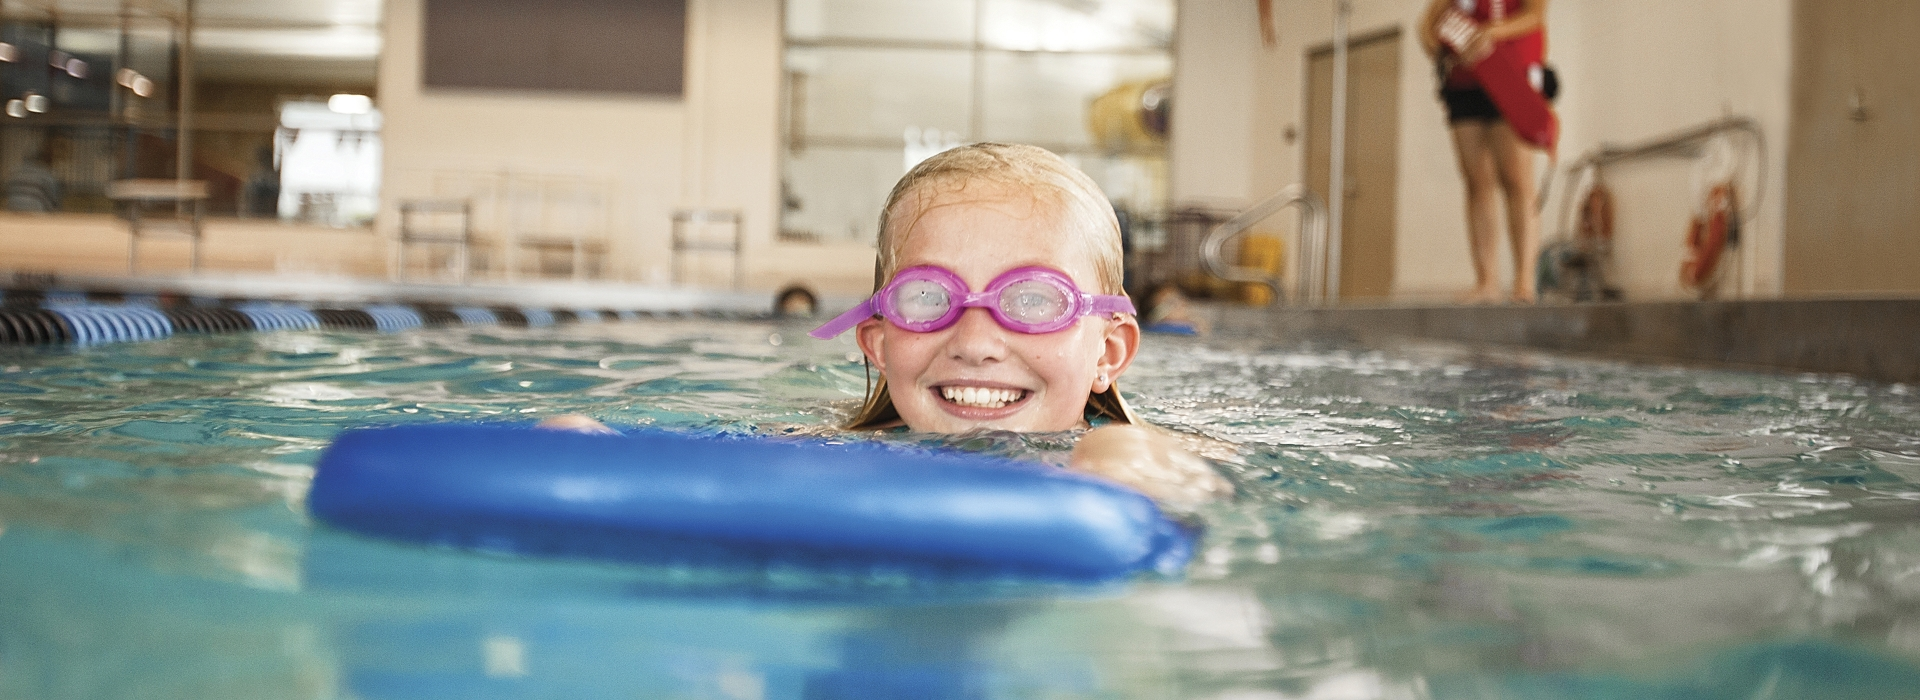 Bellevue family ymca ymca of greater seattle - Washington park swimming pool hours ...